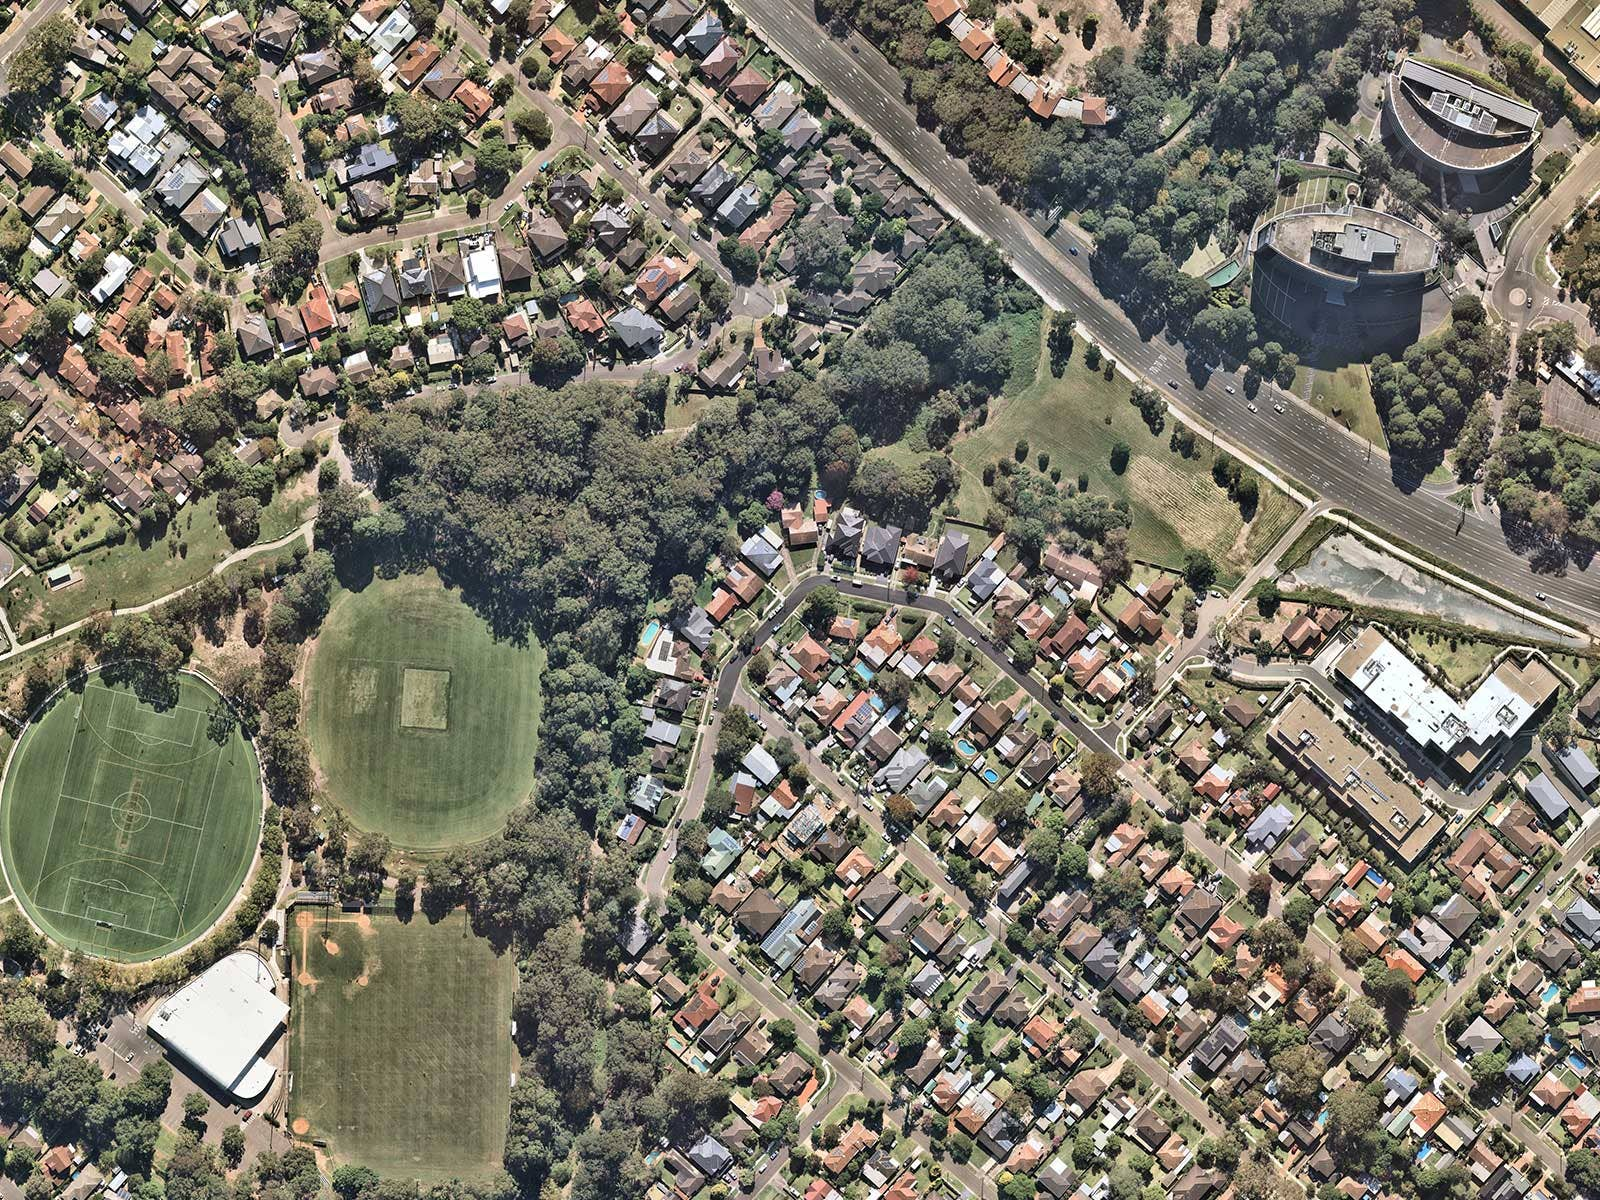 North Ryde, City of Ryde aerial image